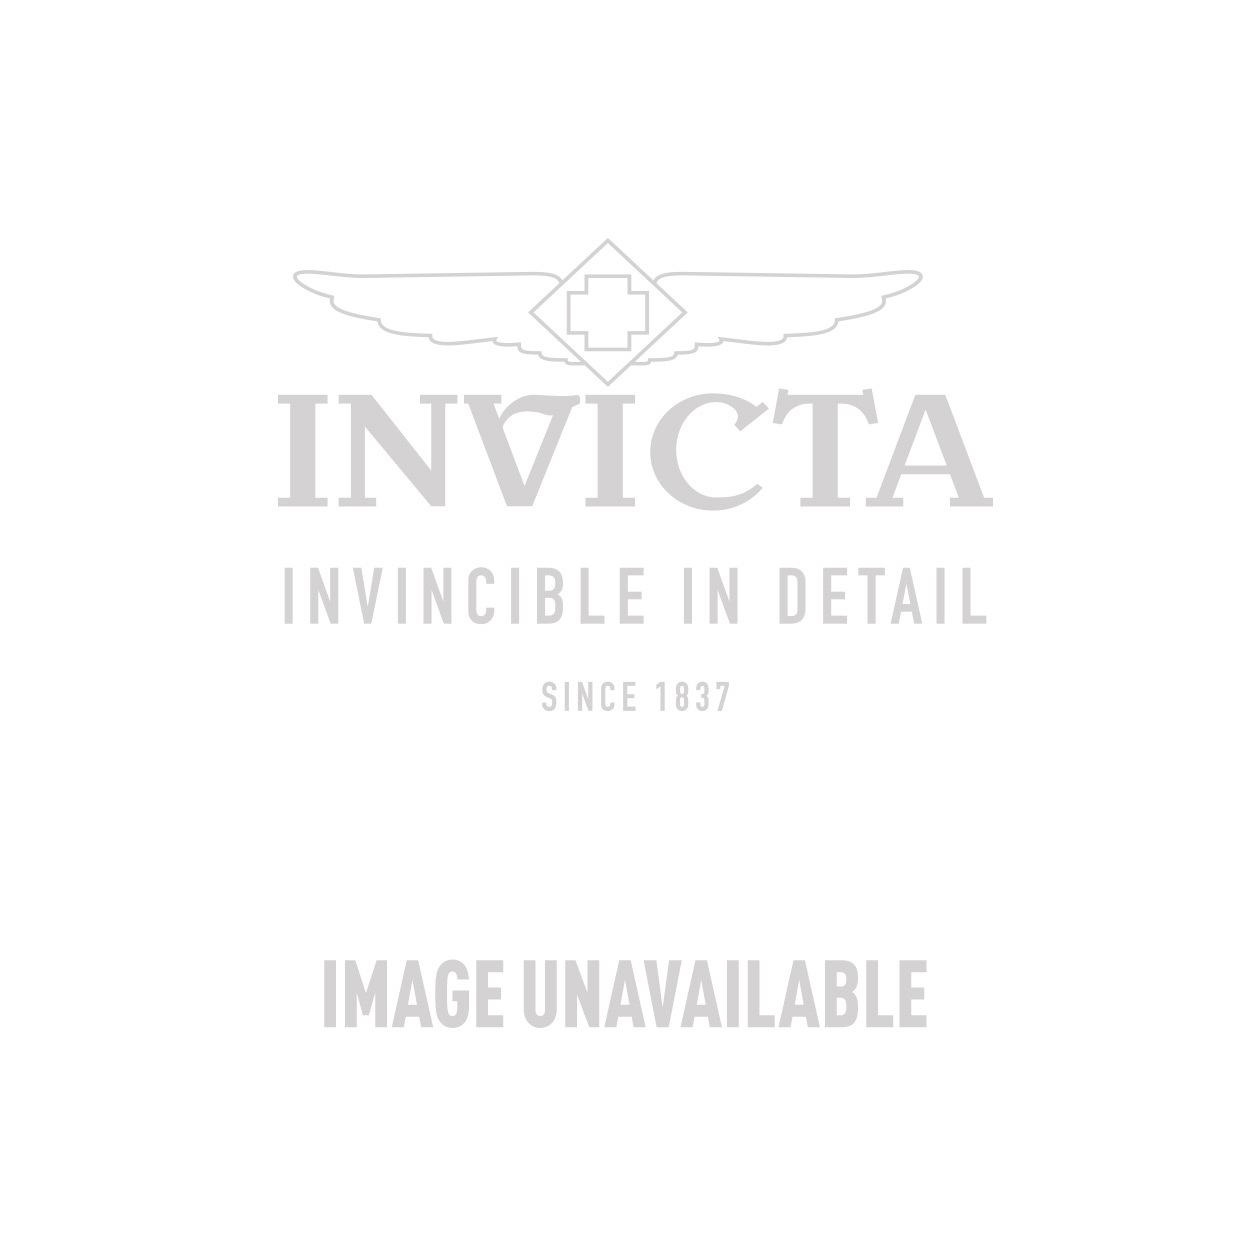 Invicta S. Coifman Swiss Movement Quartz Watch - Gold case with Gold tone Stainless Steel band - Model SC0270